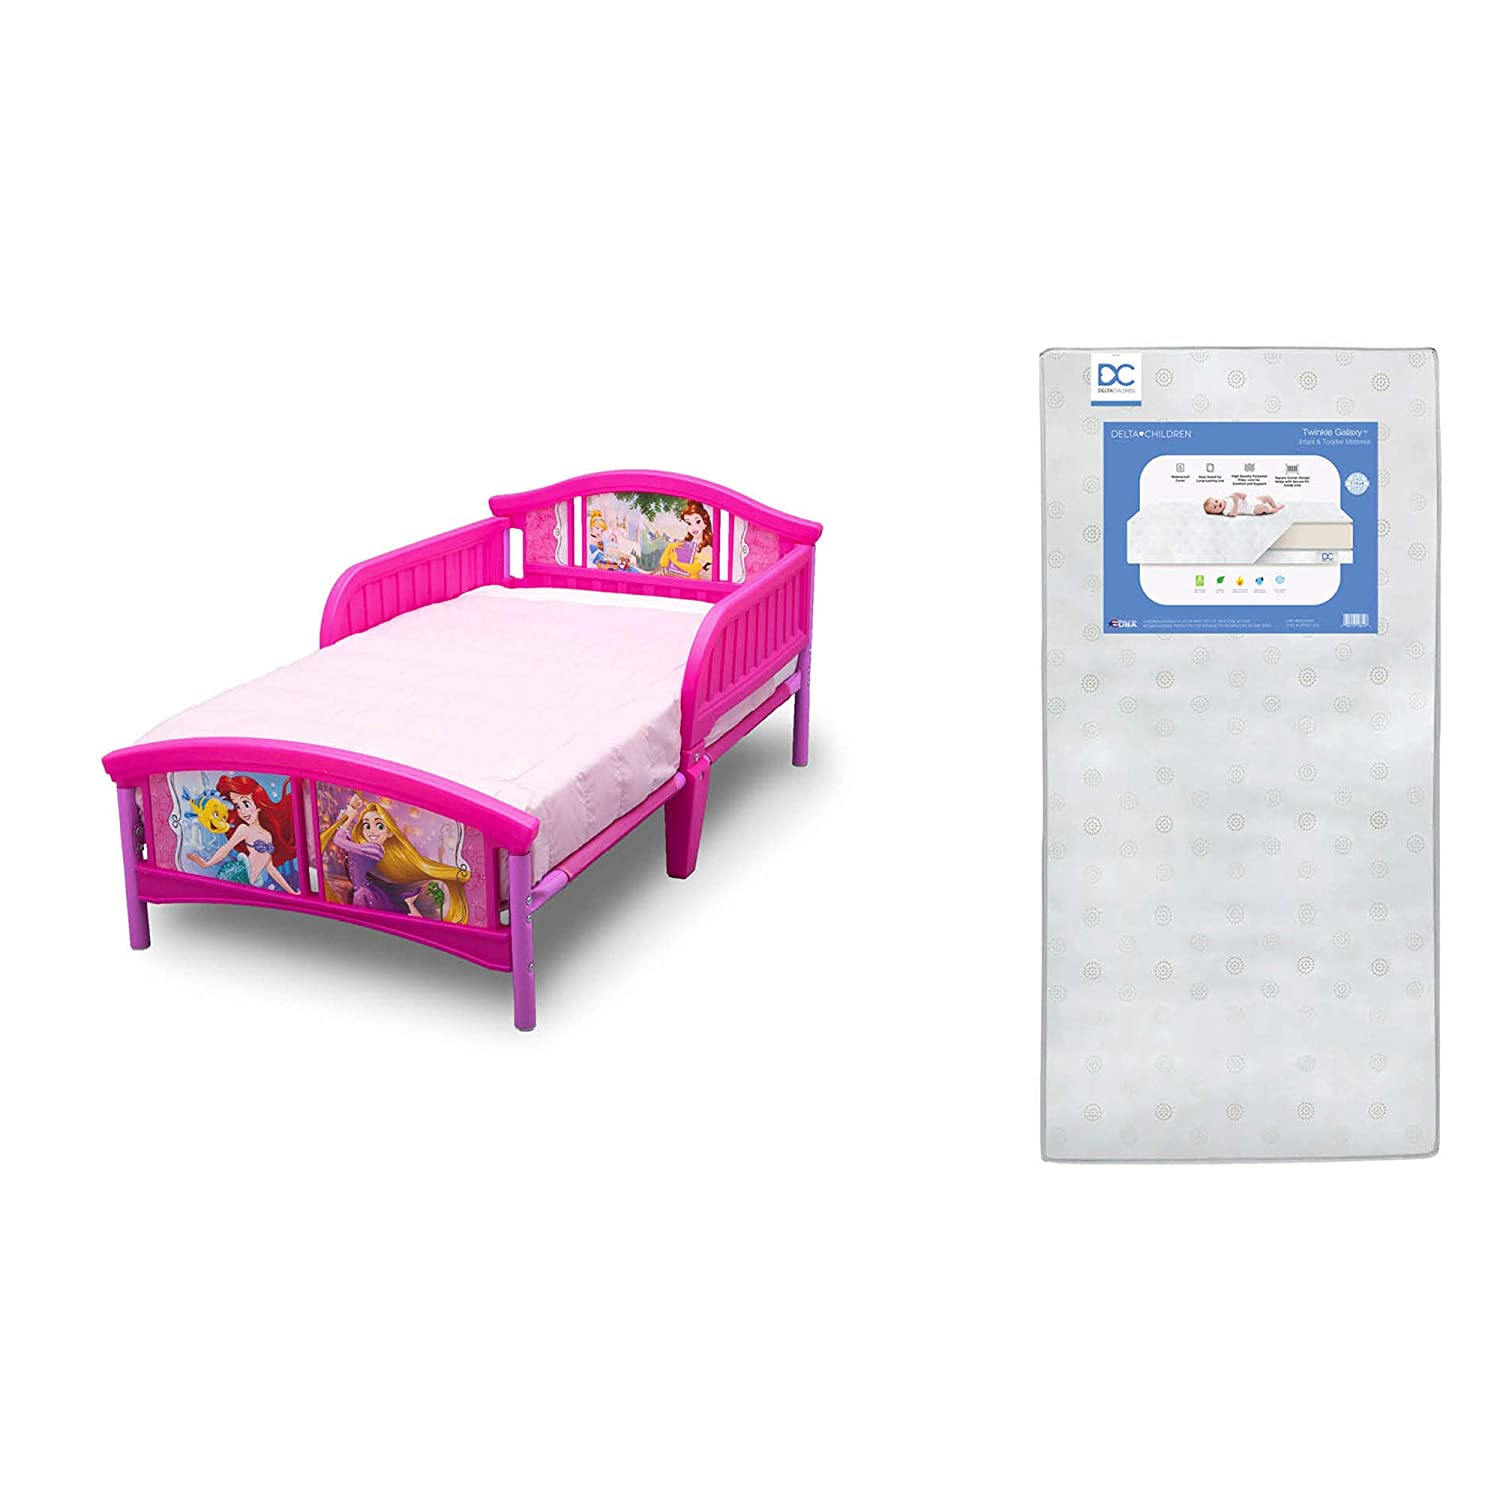 Delta Children Plastic Toddler Bed, Disney Princess + Delta Children Twinkle Galaxy Dual Sided Recycled Fiber Core Toddler Mattress (Bundle)